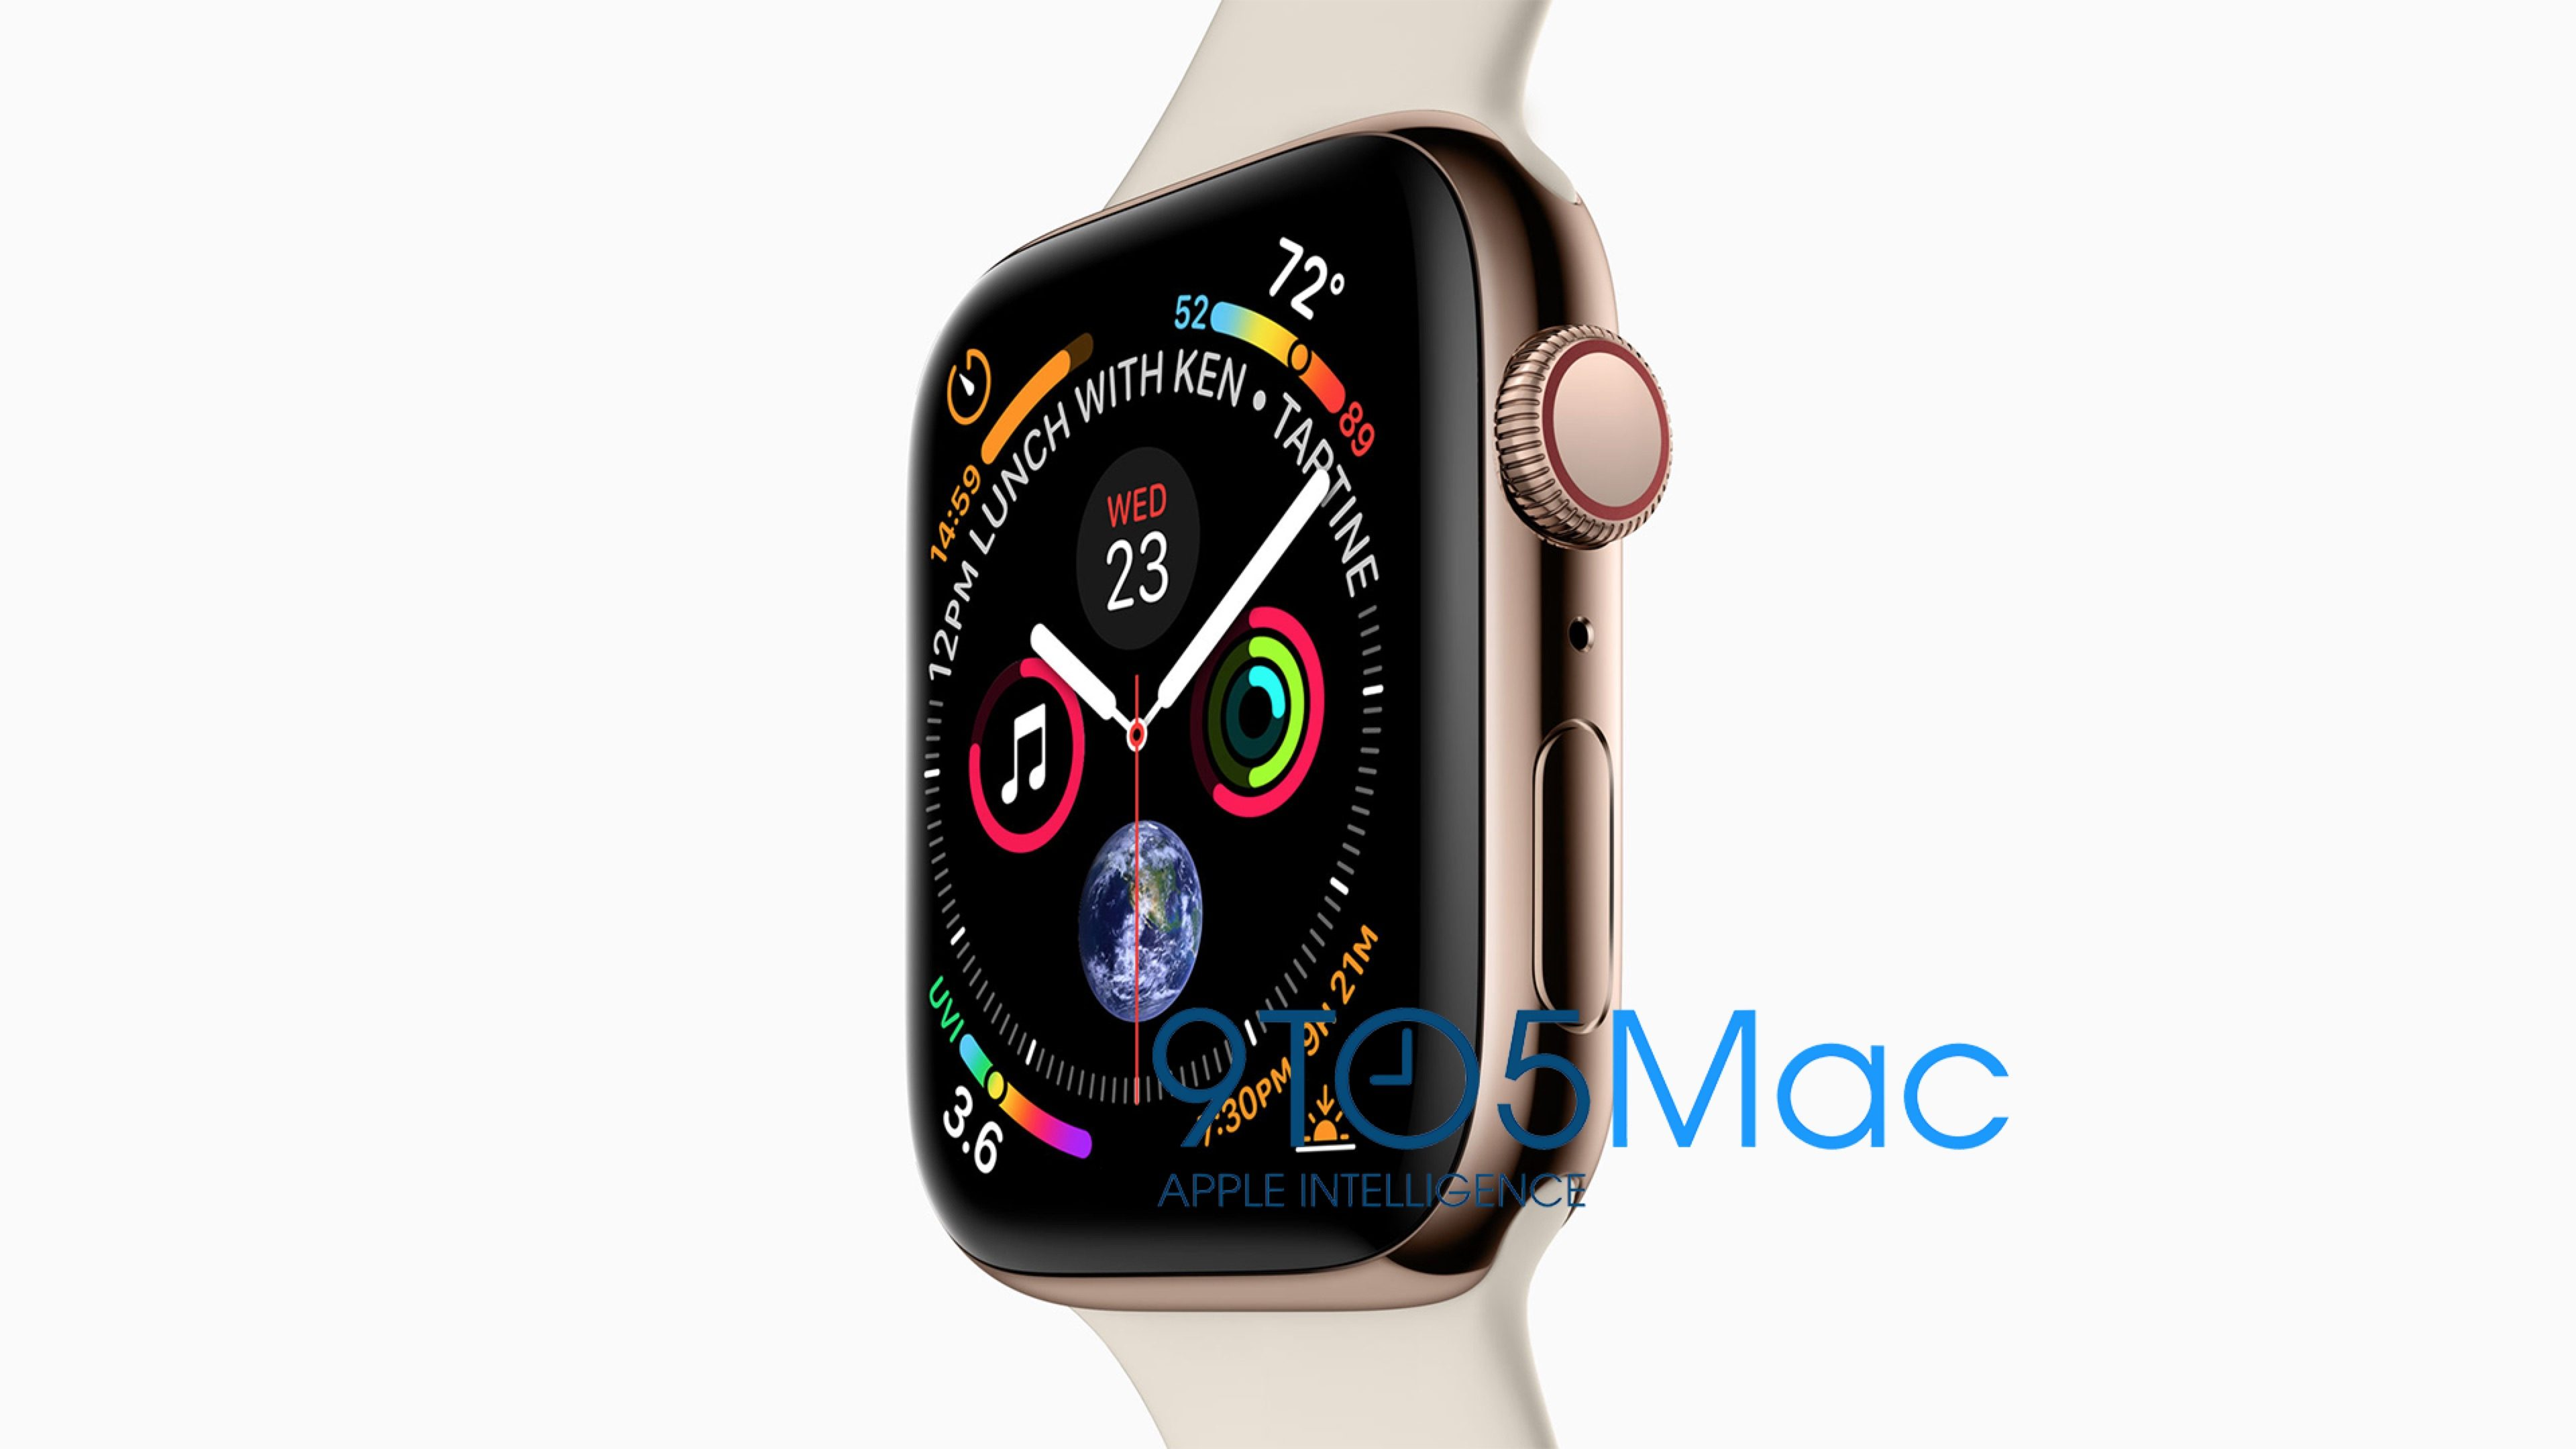 apple_watch_series_4_9to5mac.jpg